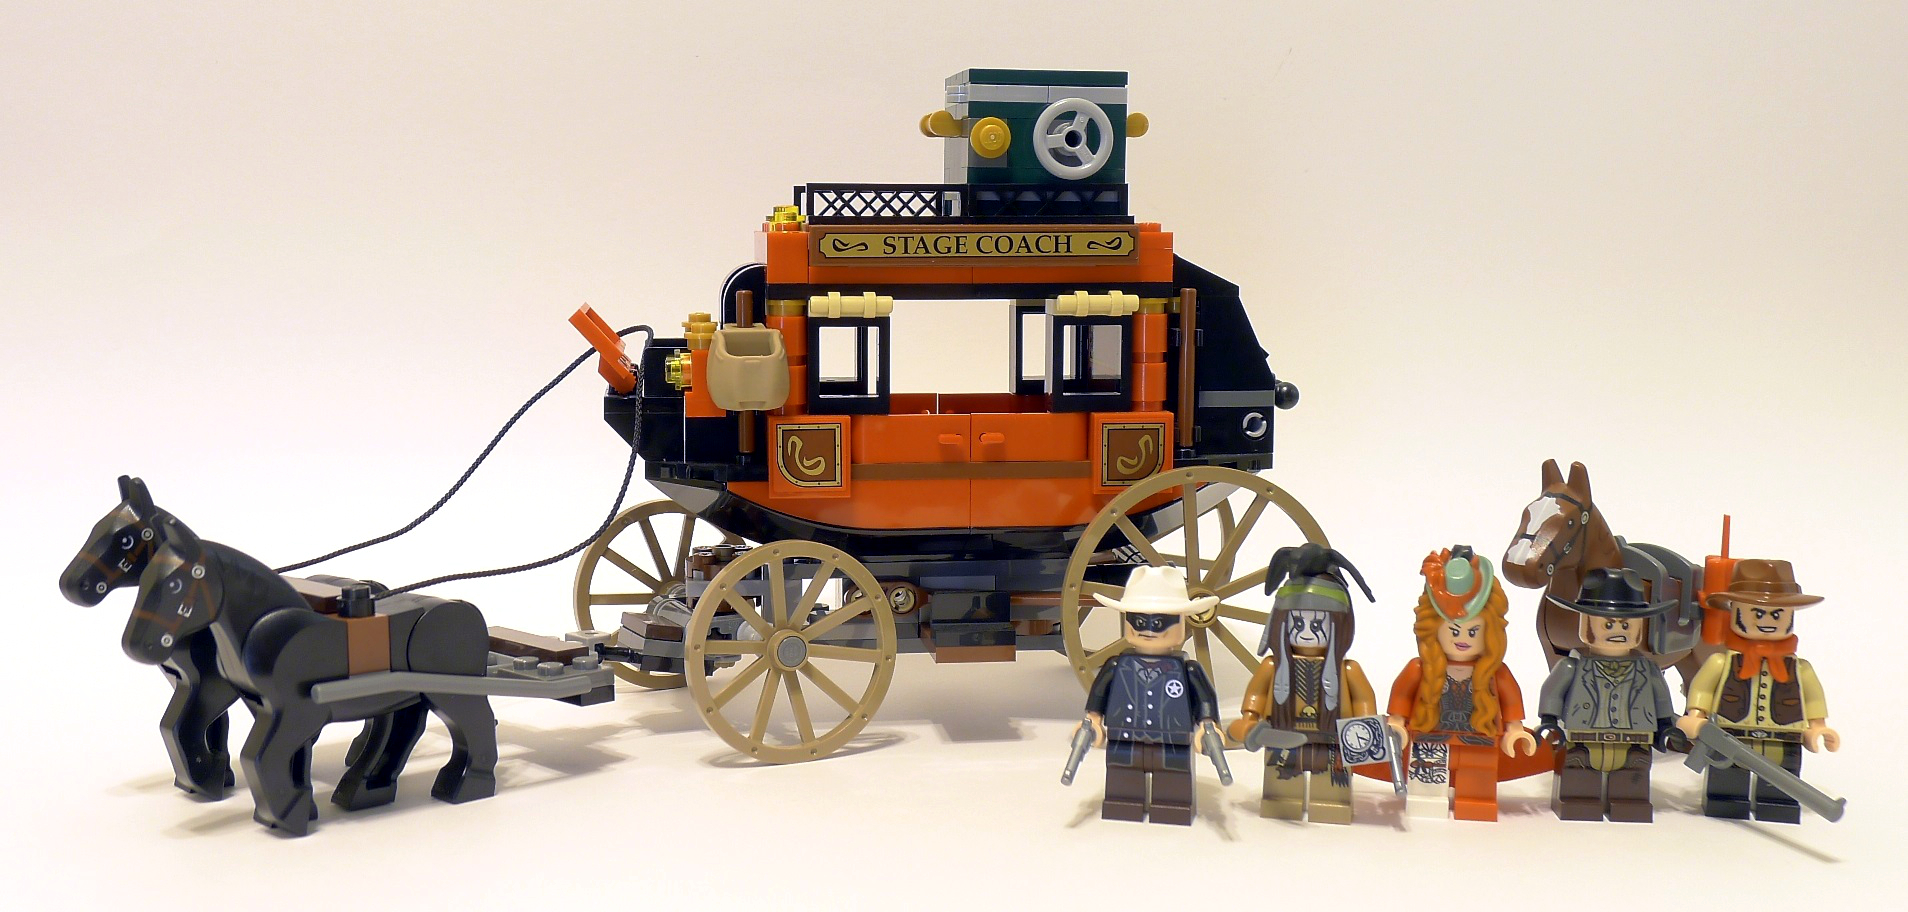 LEGO The Lone Ranger Review: 79108 Stagecoach Escape | From Bricks ...